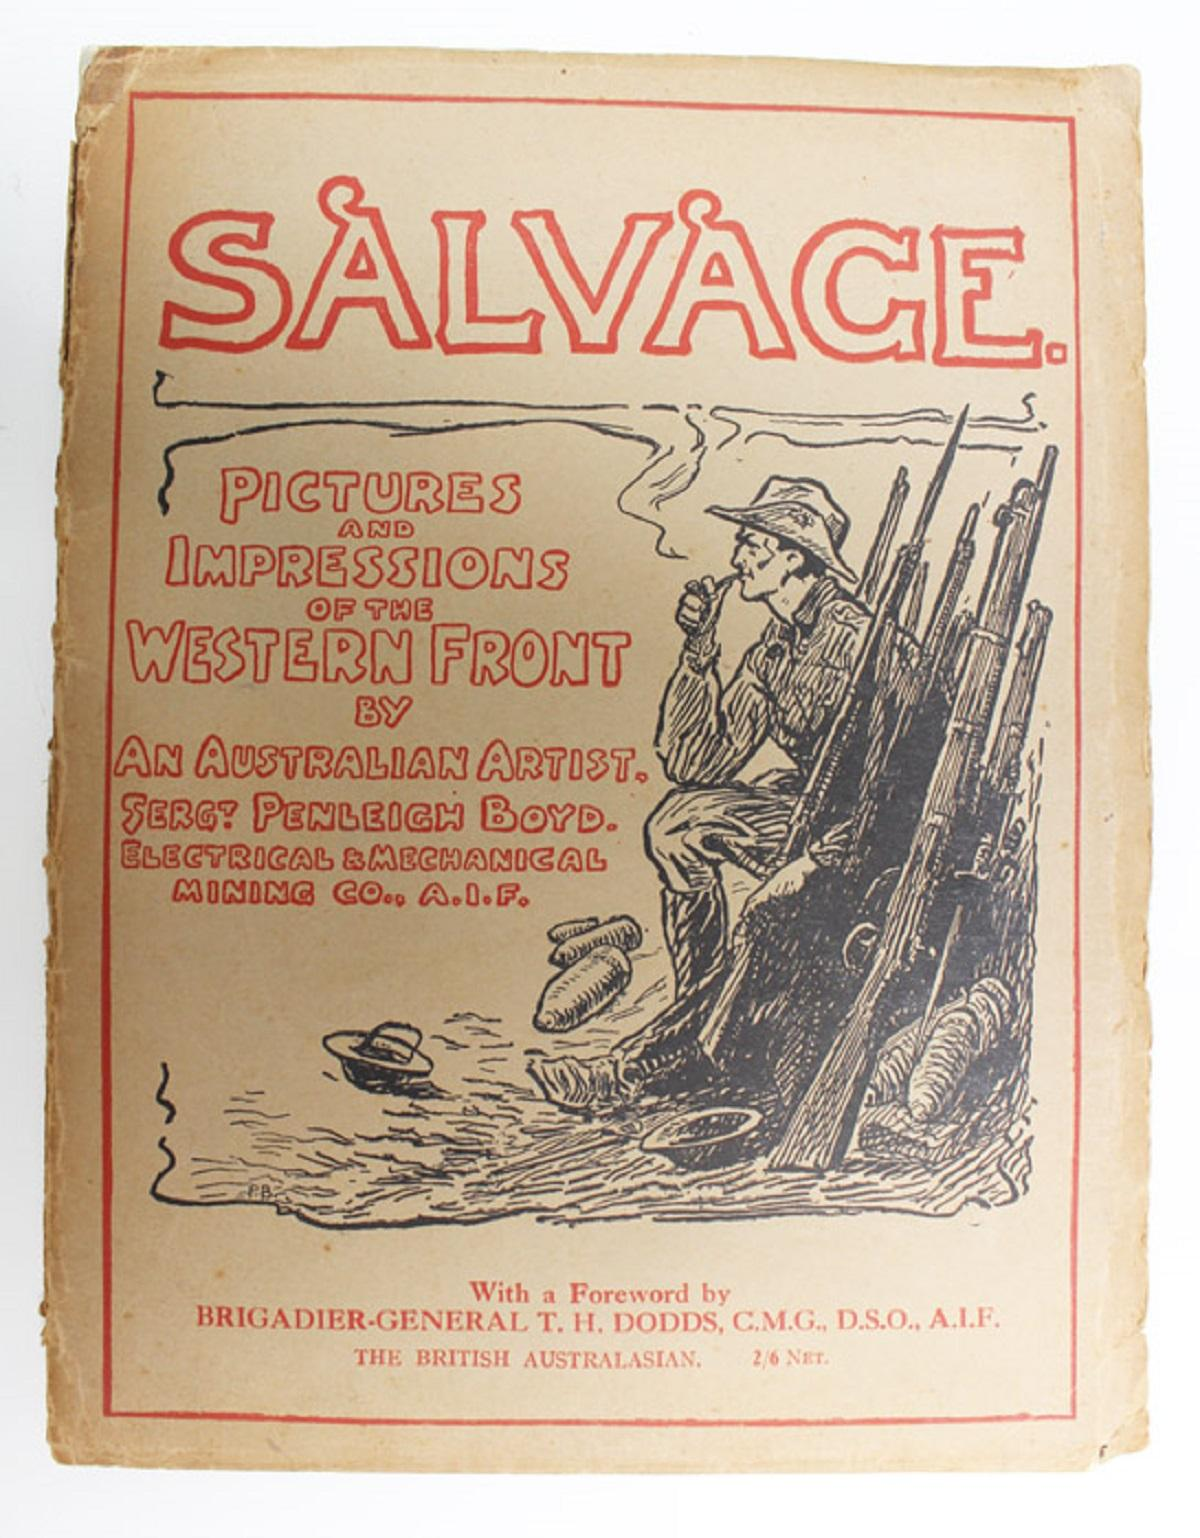 """WWI Australia. Original 1918 published copy of """"Salvage. Pictures and Impressions of the Western Front by an Australian artist, Sergt Penleigh Boyd. Electrical & Mechanical Mining Co. A.I.F."""""""